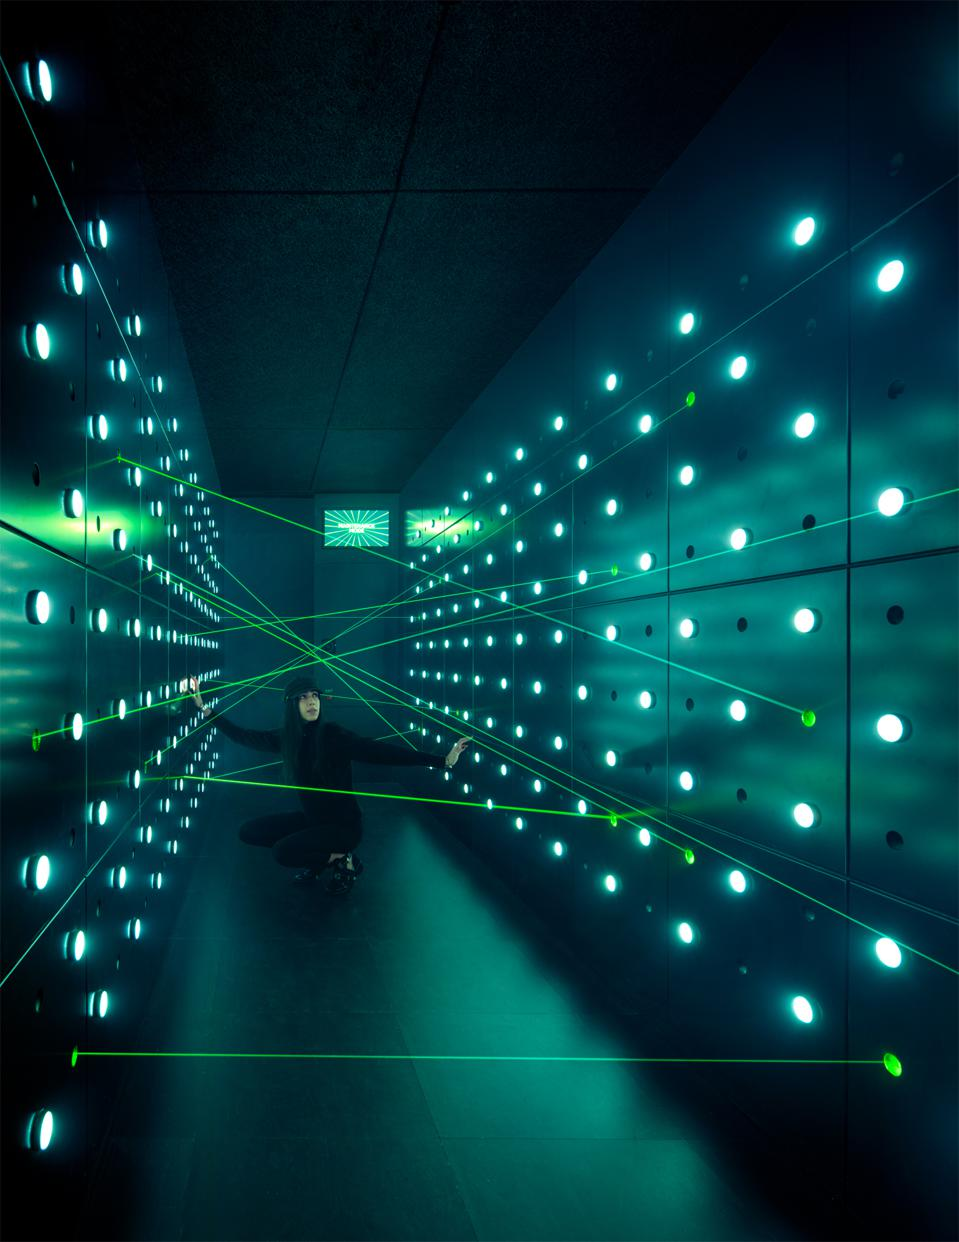 No spy museum would be complete without a laser room!